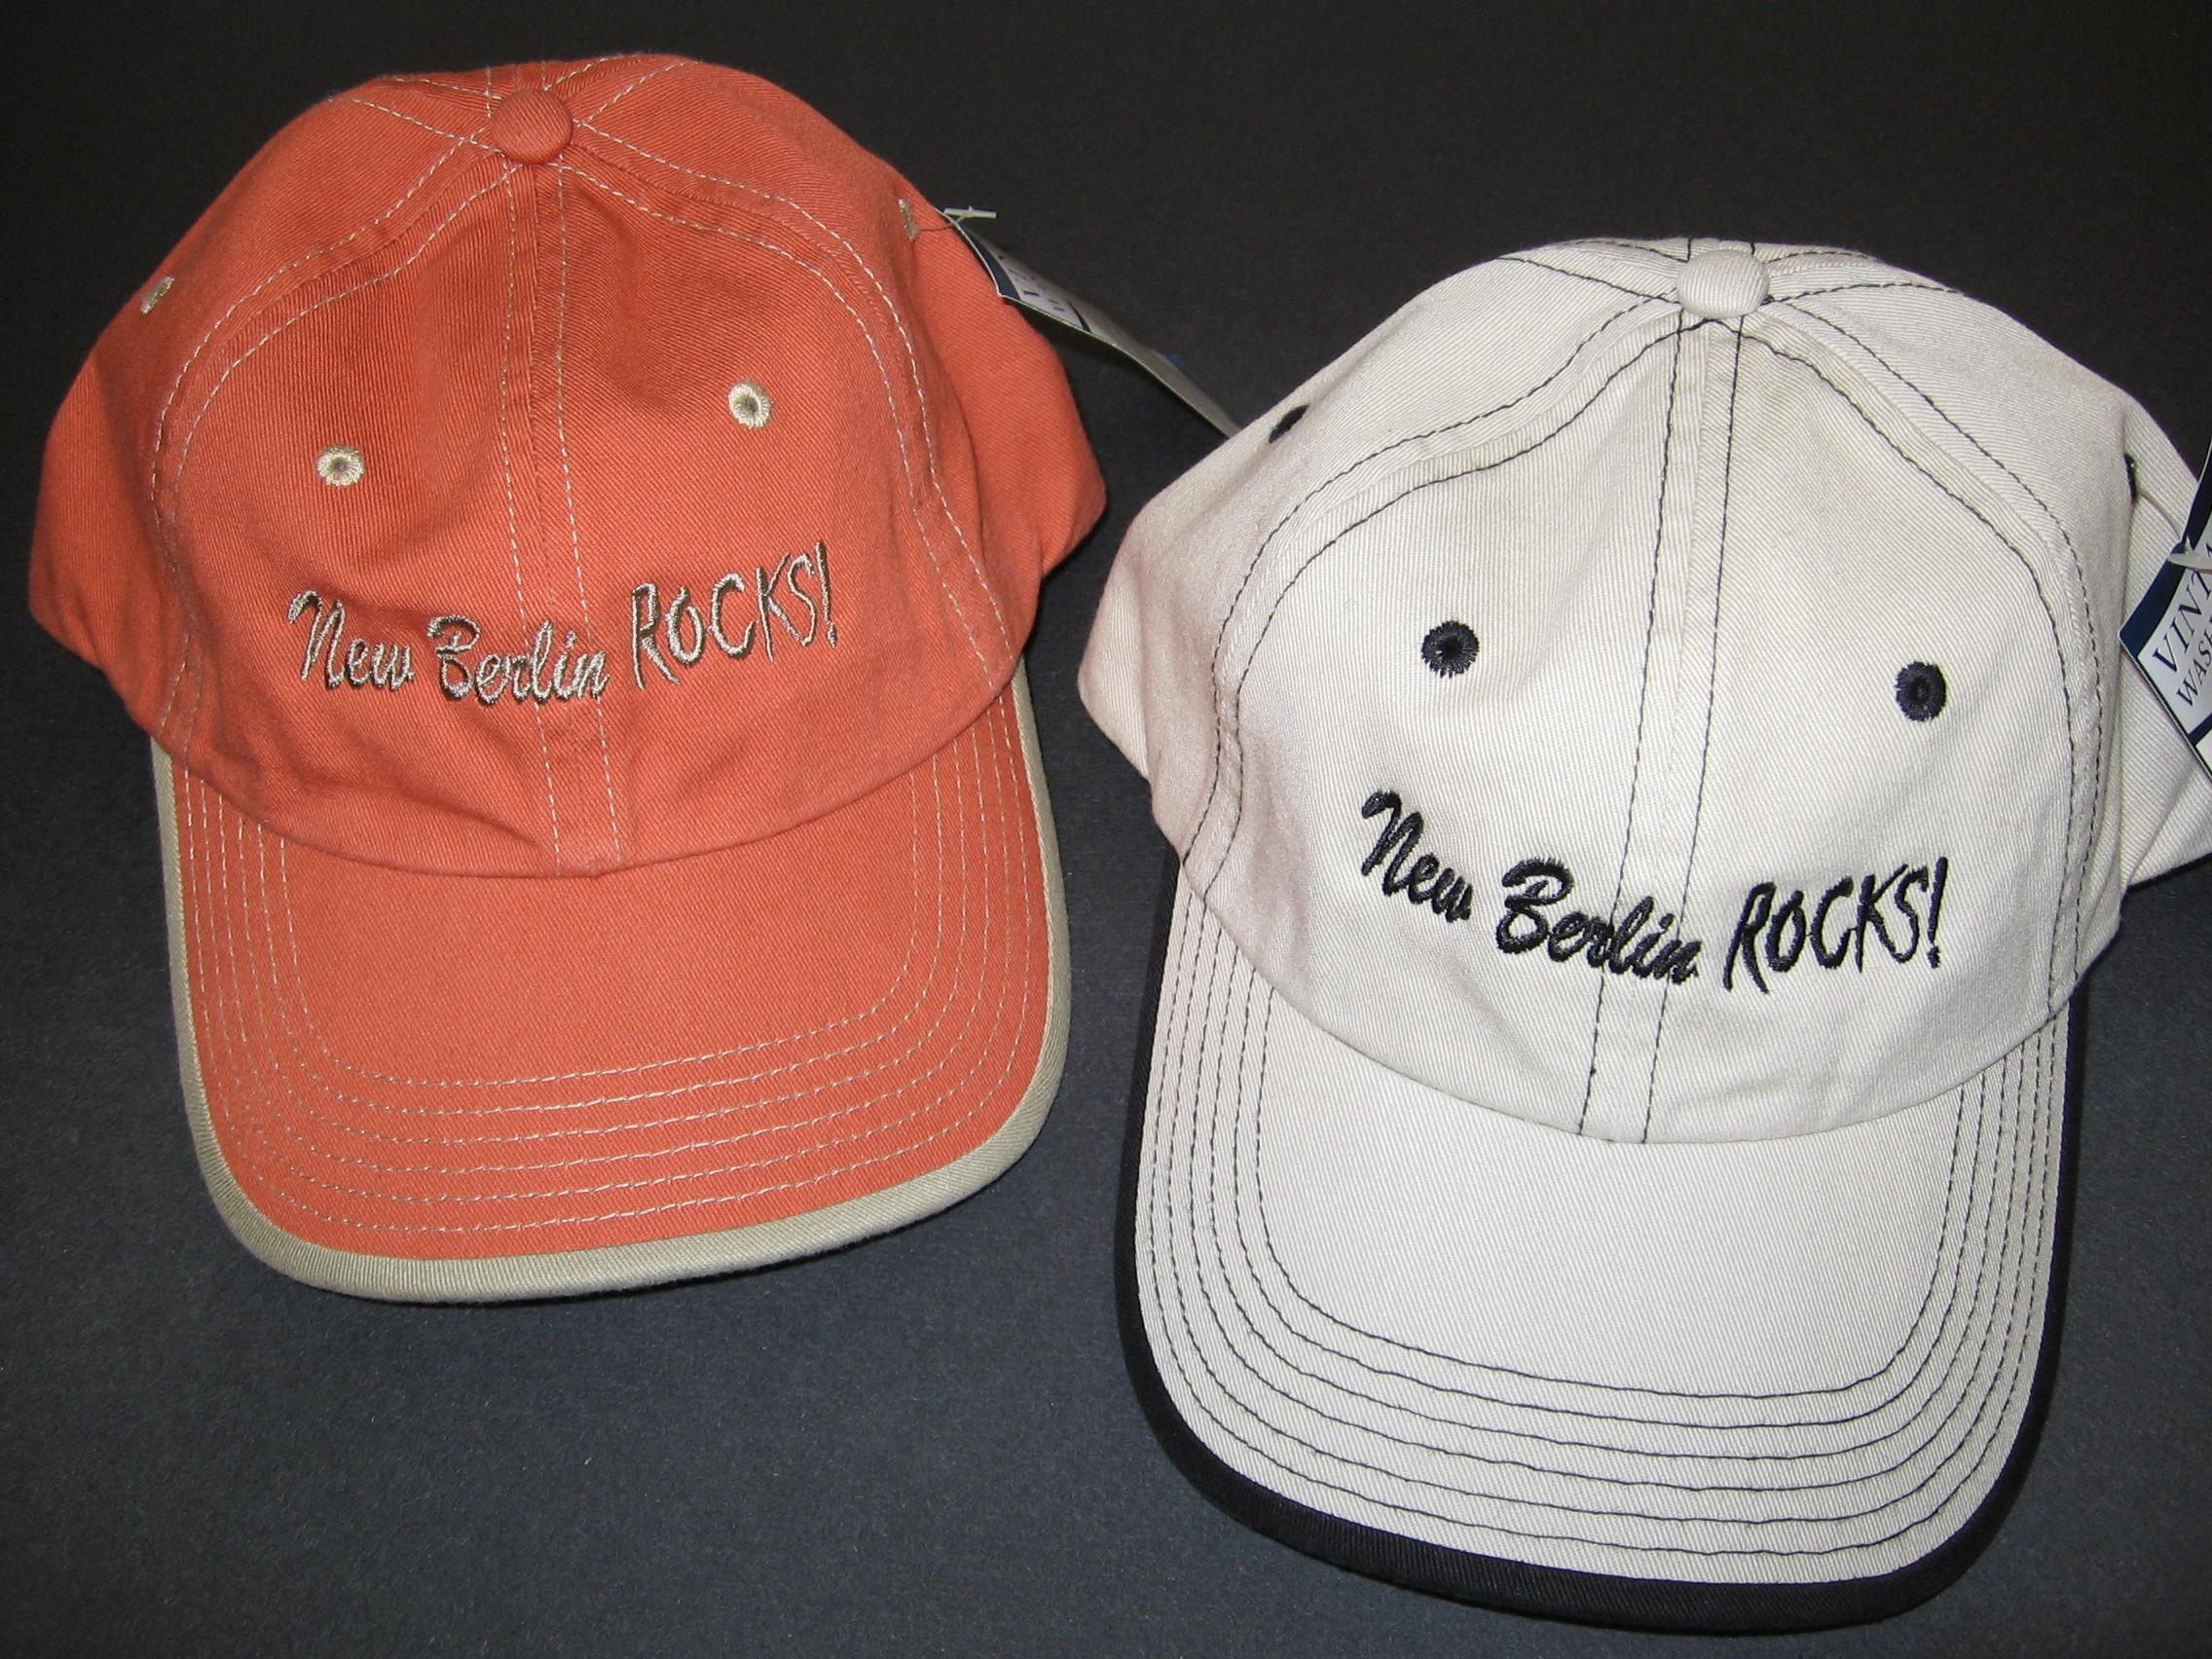 New Berlin Rocks Baseball Caps